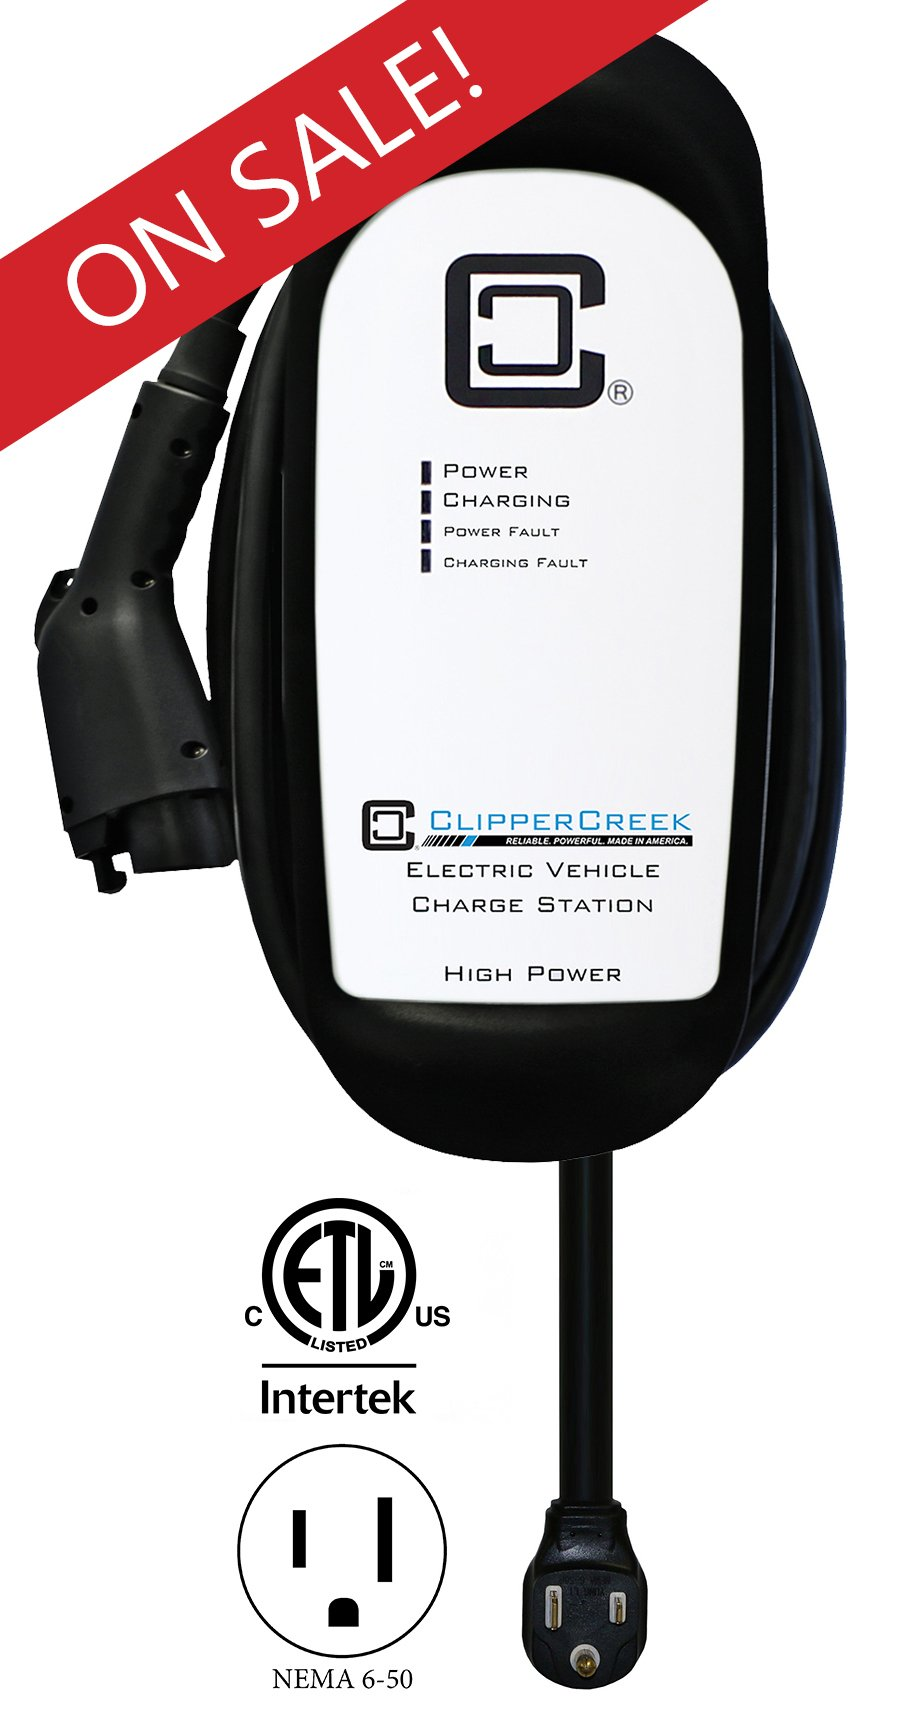 ClipperCreek HCS-50P, Plug-in 240V, 40A, EV Charging Station, 25 ft charging cable, NEMA 6-50, SAFETY CERTIFIED, Made in America. SAVE $200 NOW!